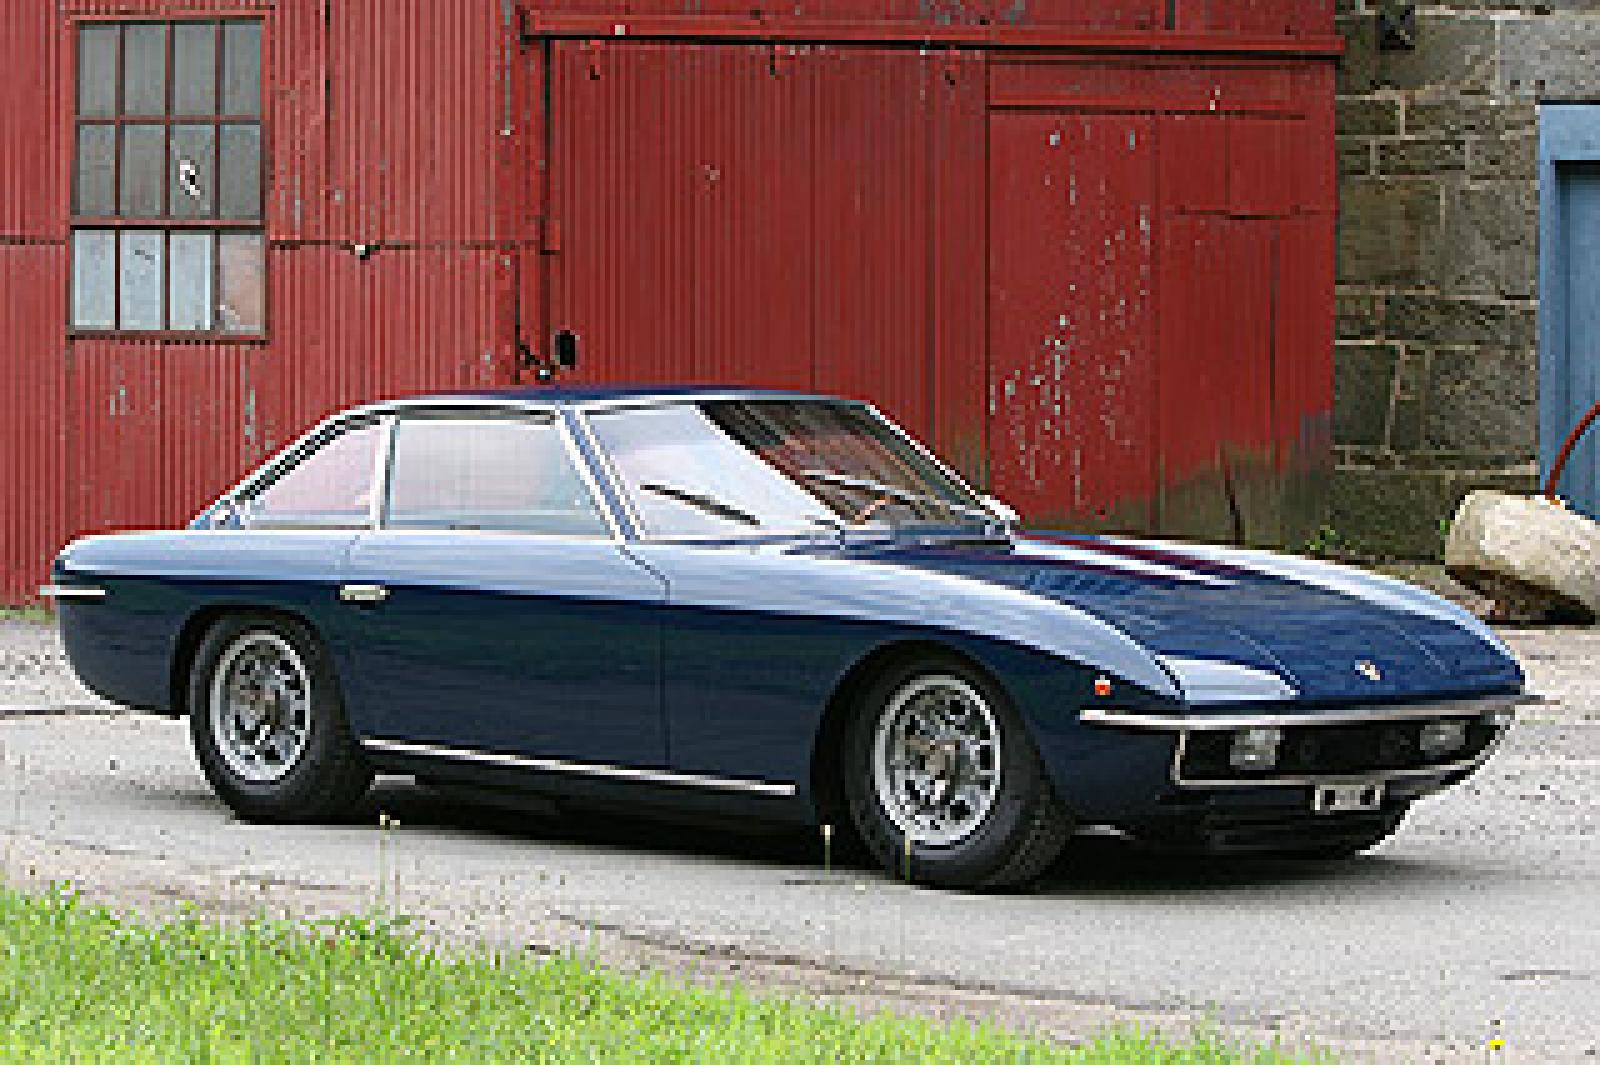 Lamborghini Islero S Vintage Photo Gallery